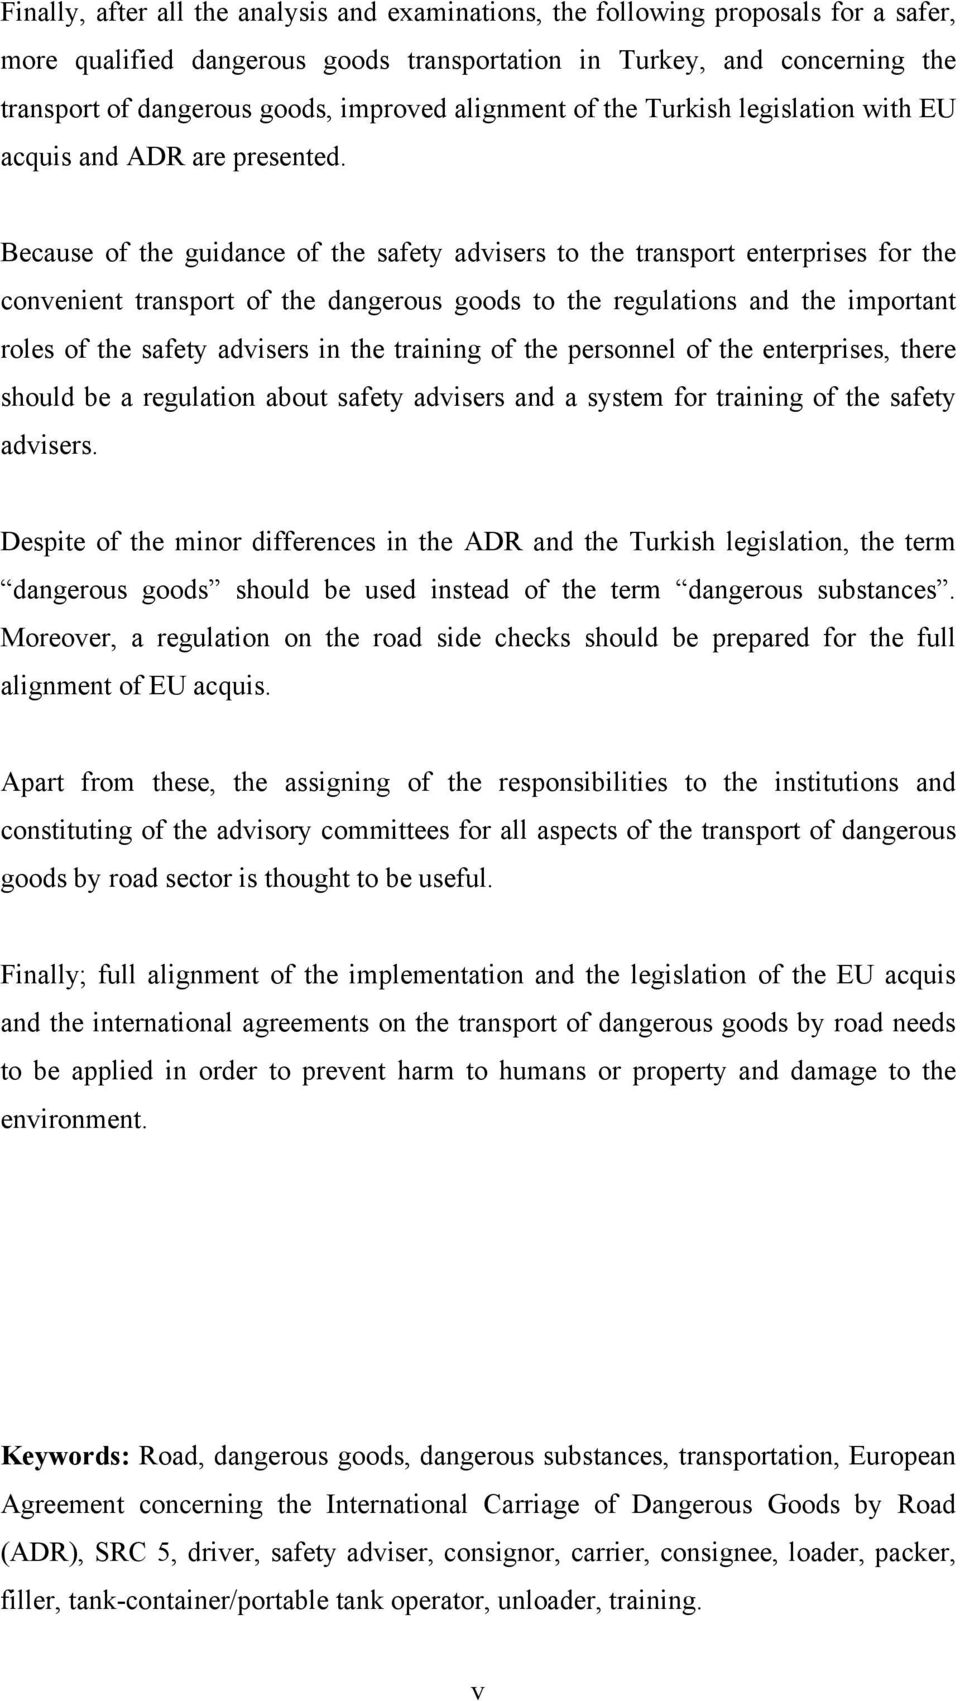 Because of the guidance of the safety advisers to the transport enterprises for the convenient transport of the dangerous goods to the regulations and the important roles of the safety advisers in